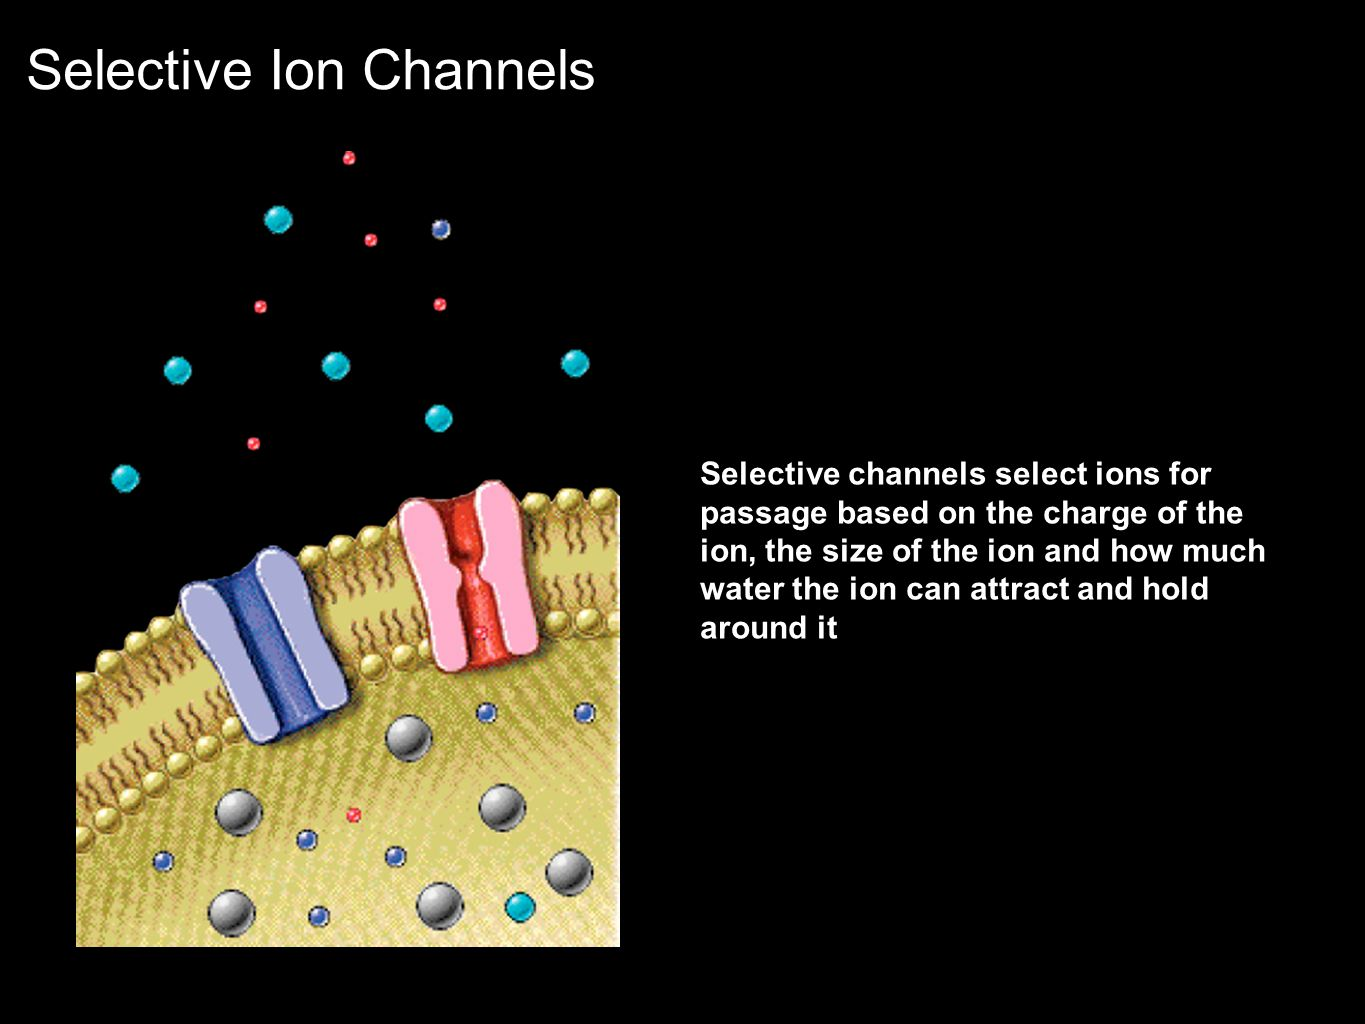 Selective Ion Channels